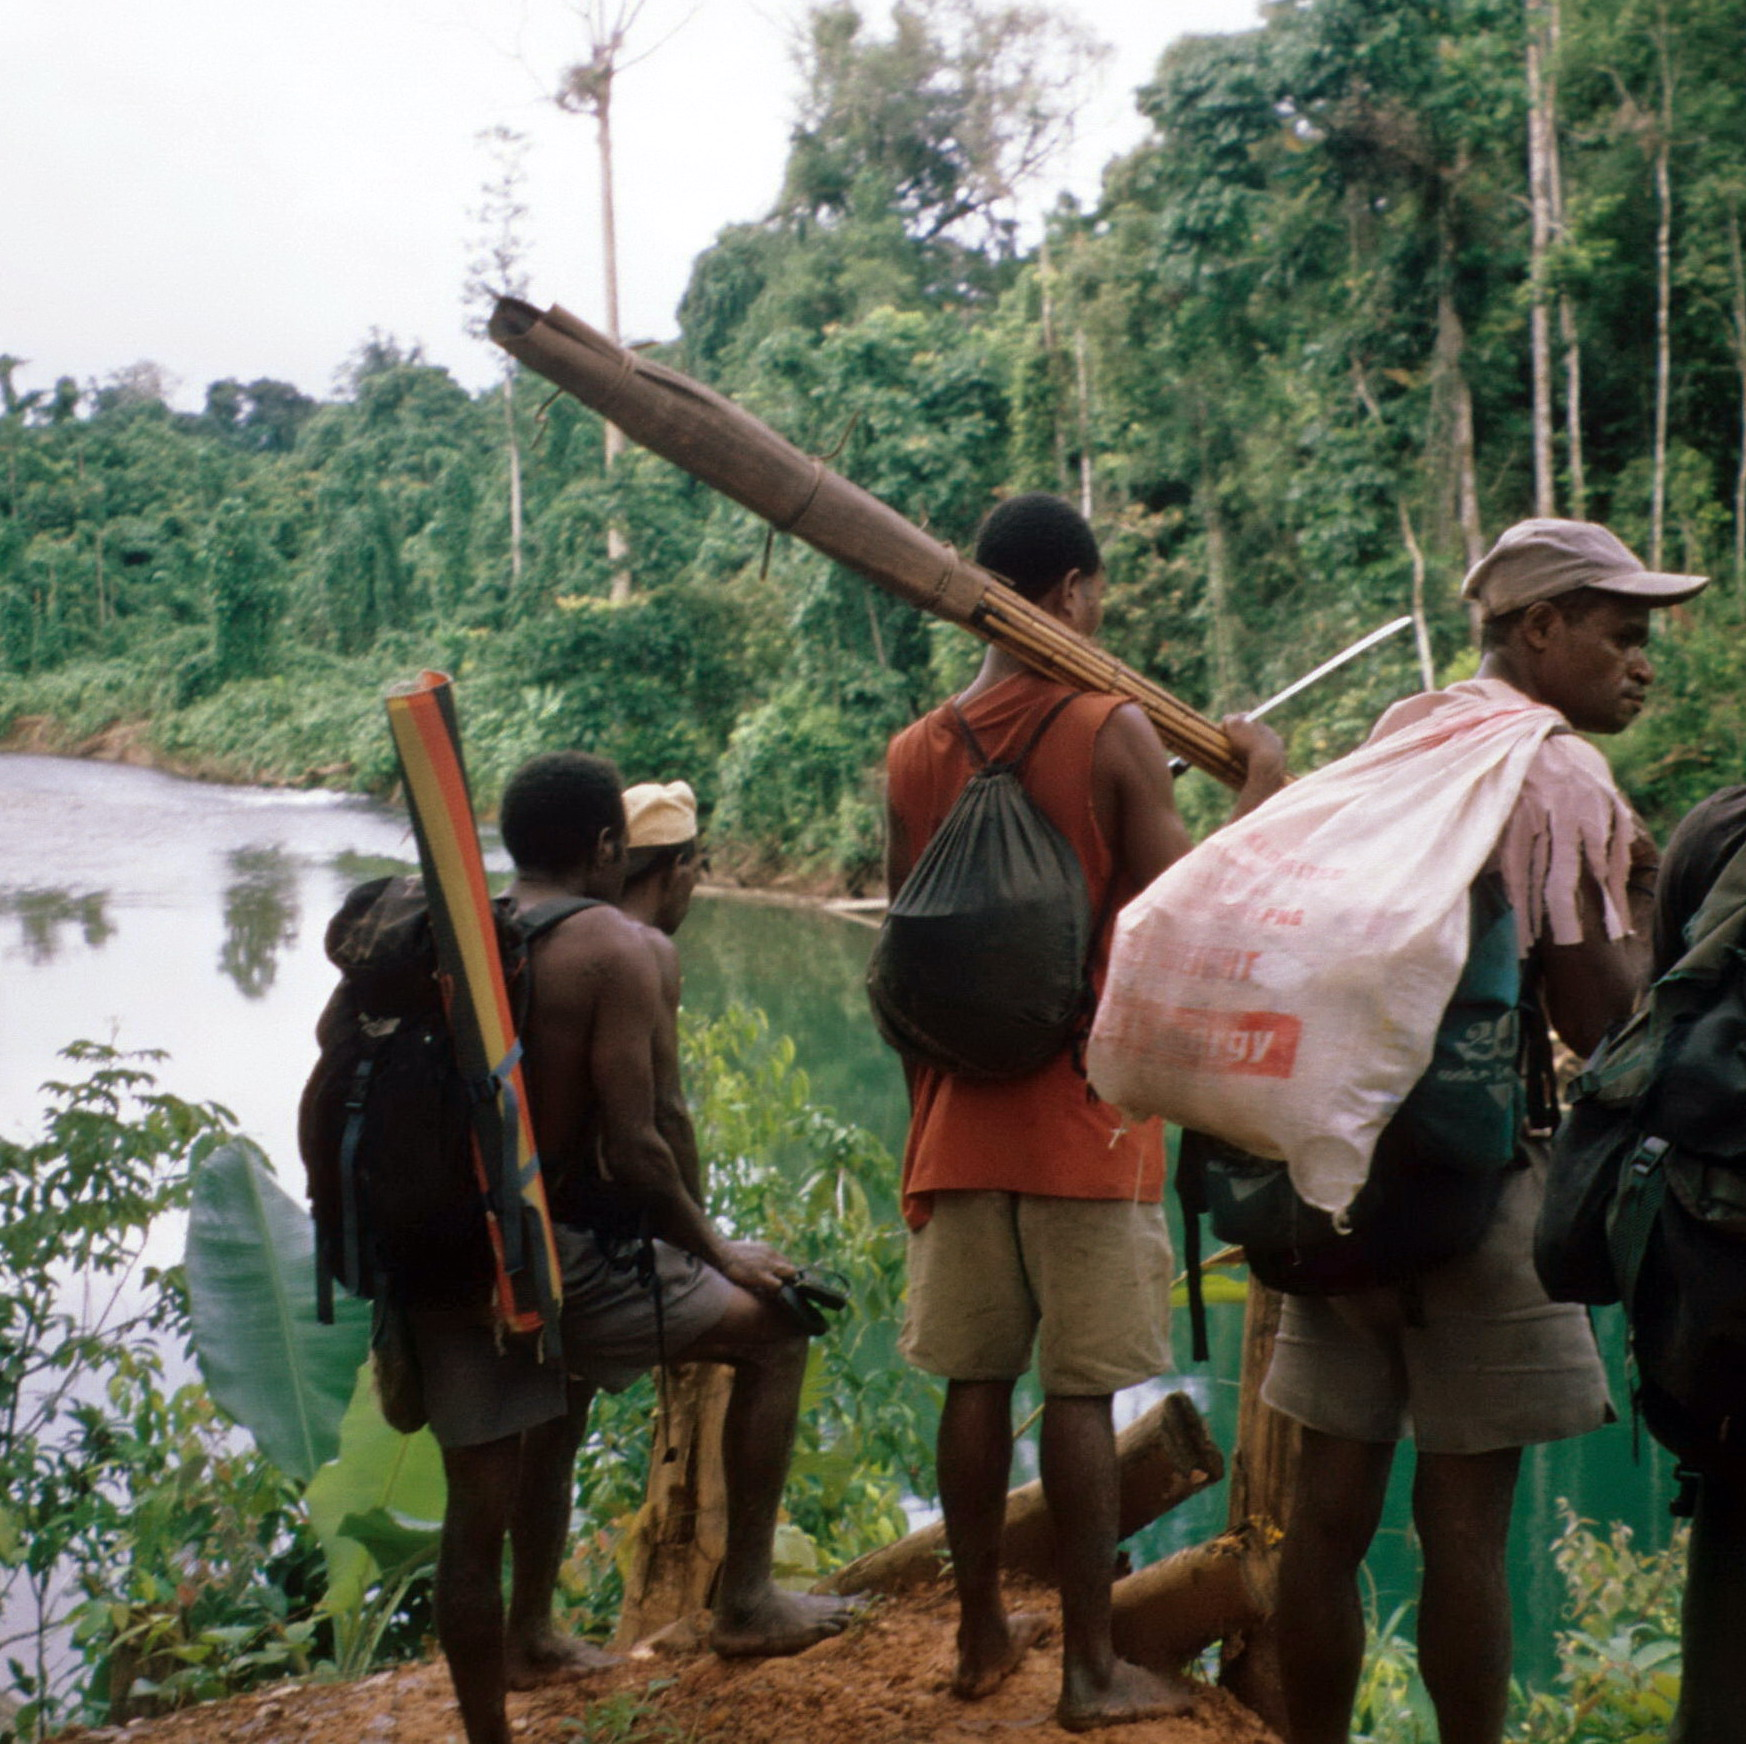 Preparing to Cross West Sepik River, Field Collecting Oceanic Art from New Guinea